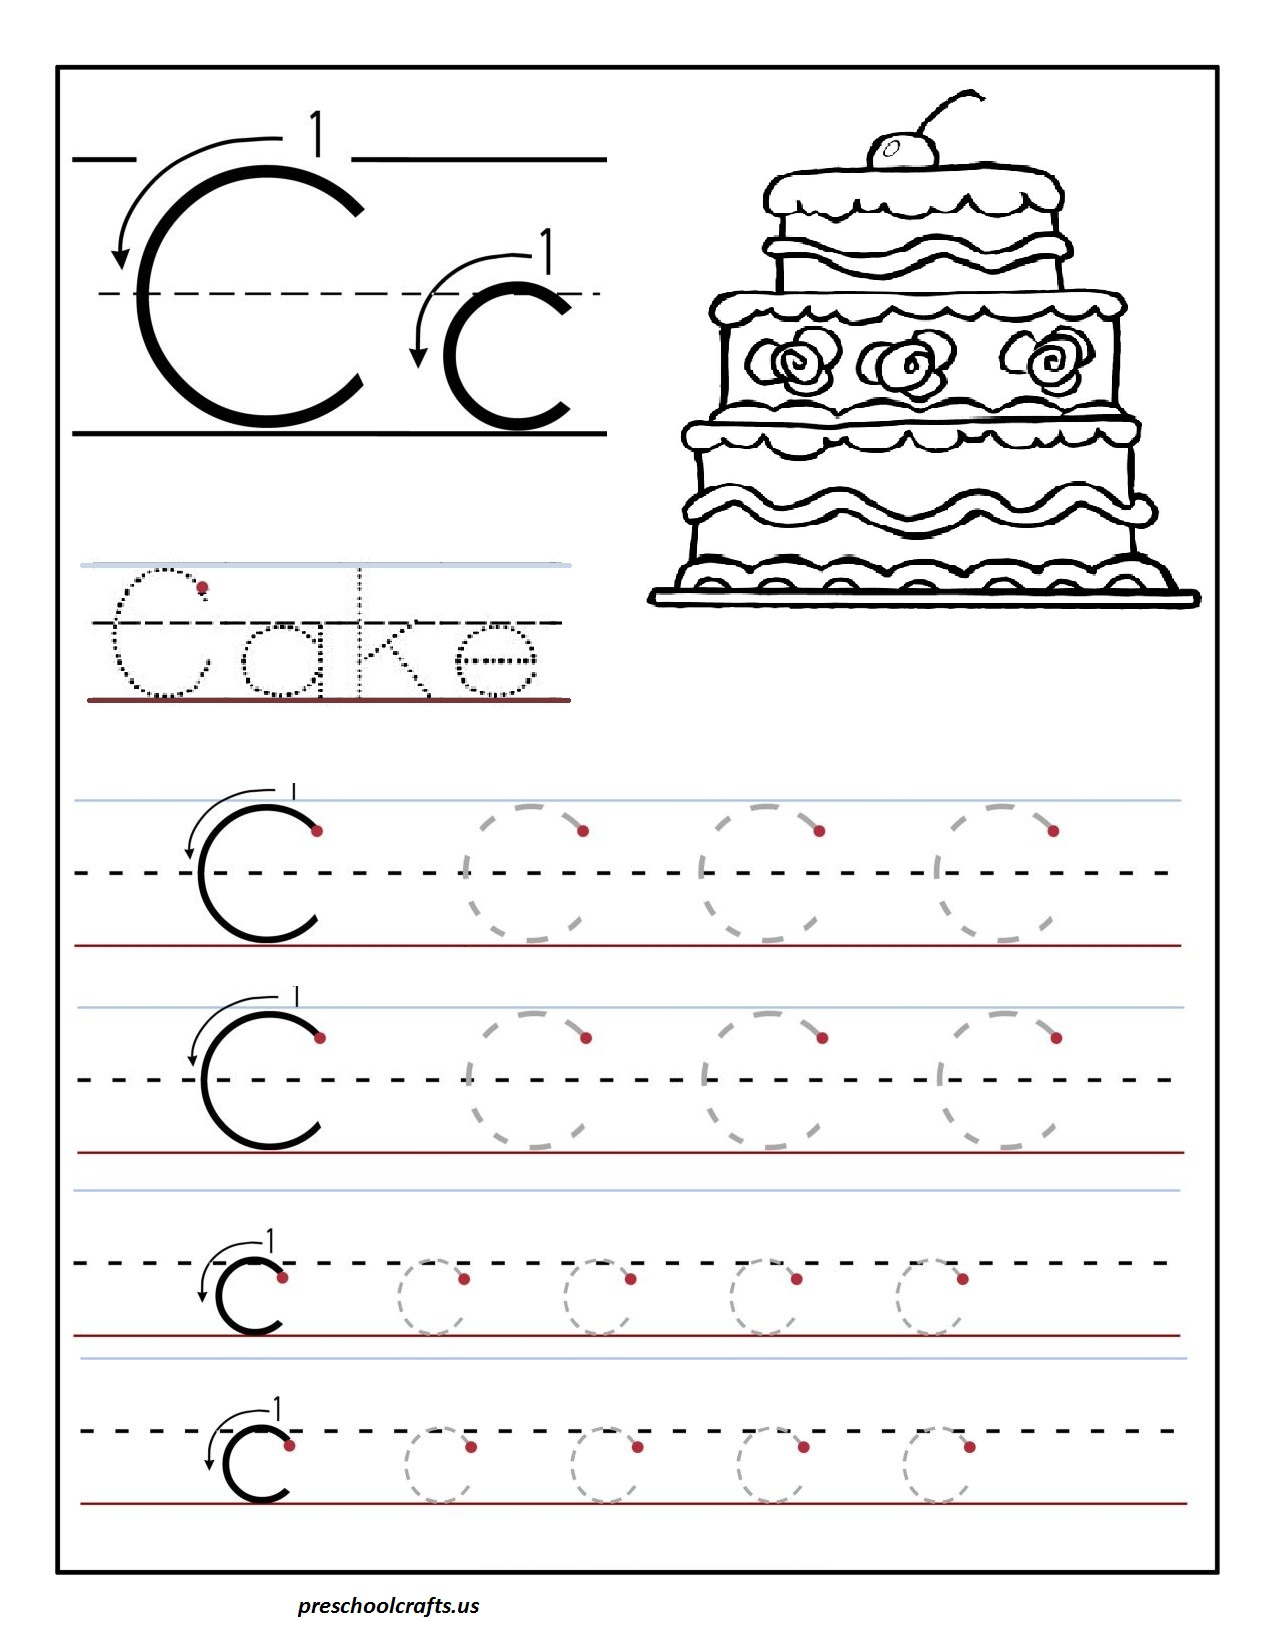 Printable Letter C Tracing Worksheets For